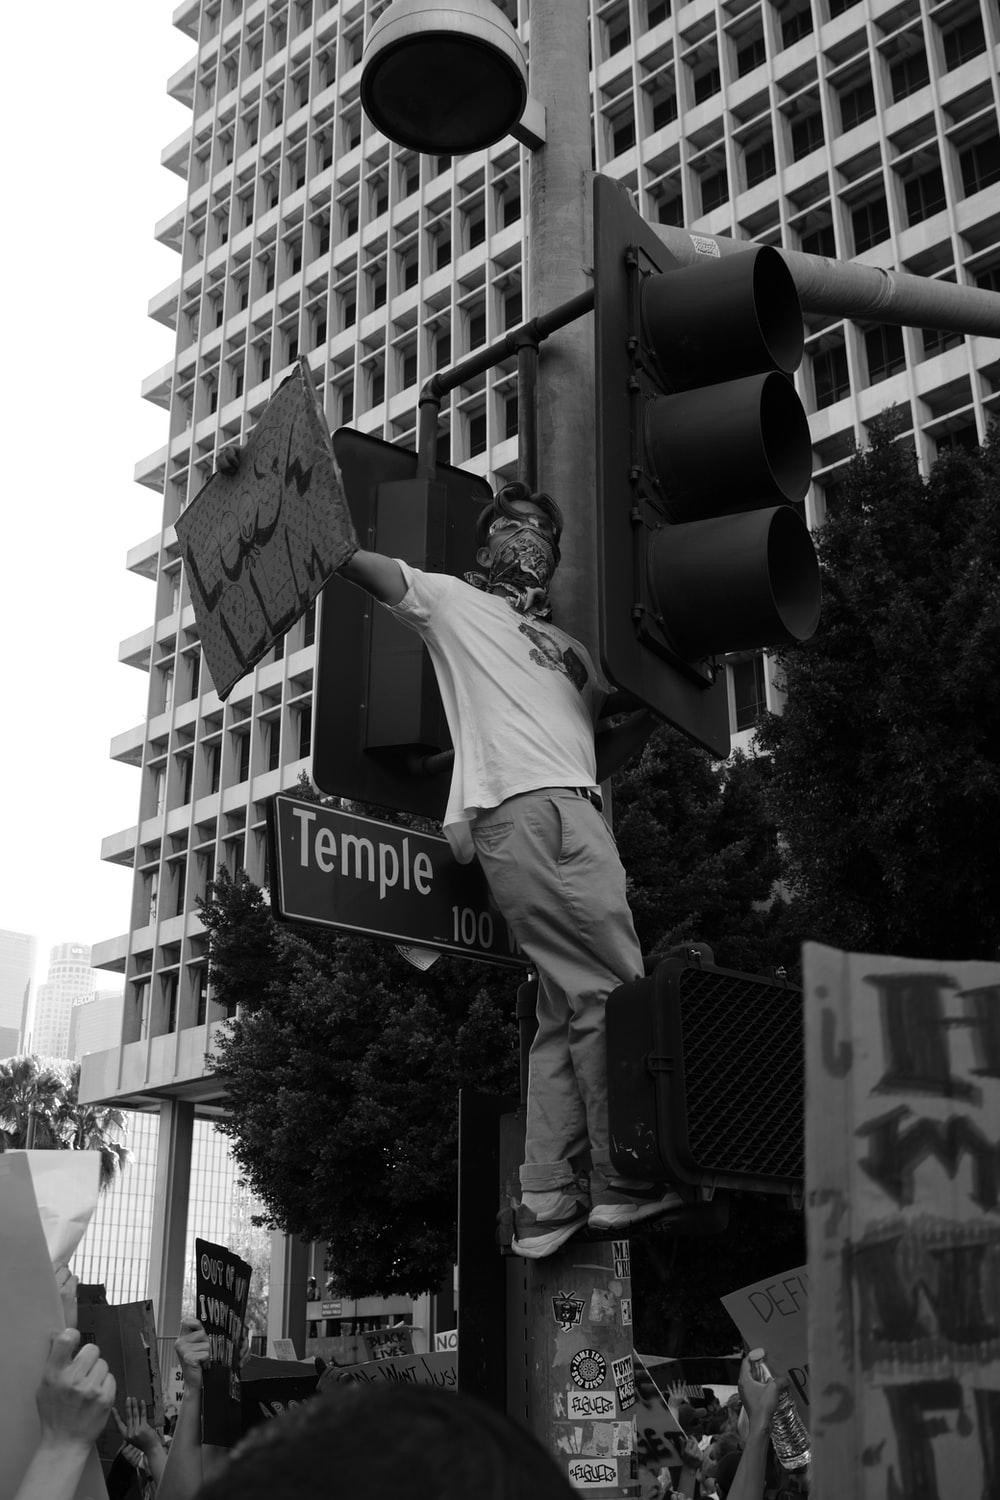 man in black suit jacket and pants standing on traffic light in grayscale photography